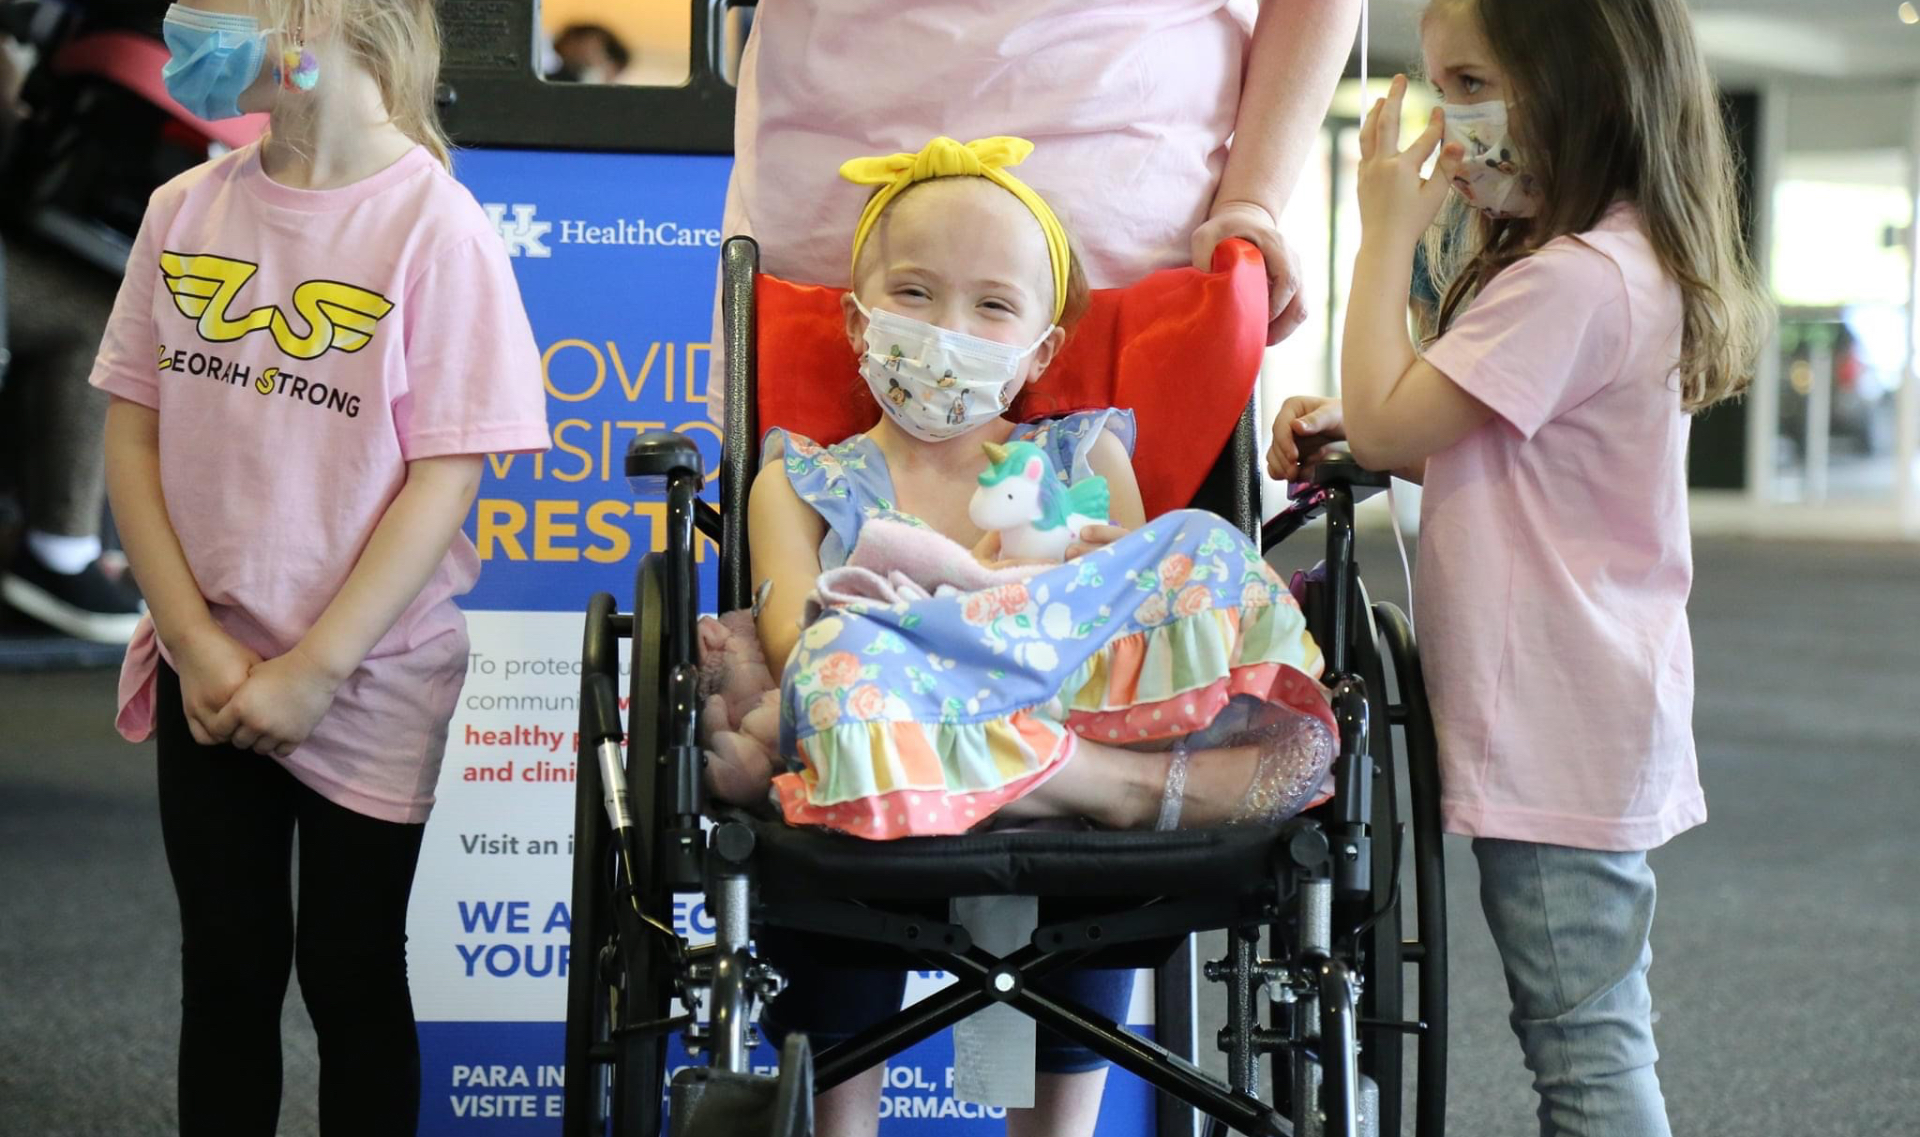 """Leorah sits in her wheelchair, legs crossed and visibly smiling from behind her medical mask, with two young girls by her side. Both of these young girls are white, wearing pink """"Lenorah Strong"""" t-shirts and jeans and both have medium-length hair, one blonde and one brunette."""